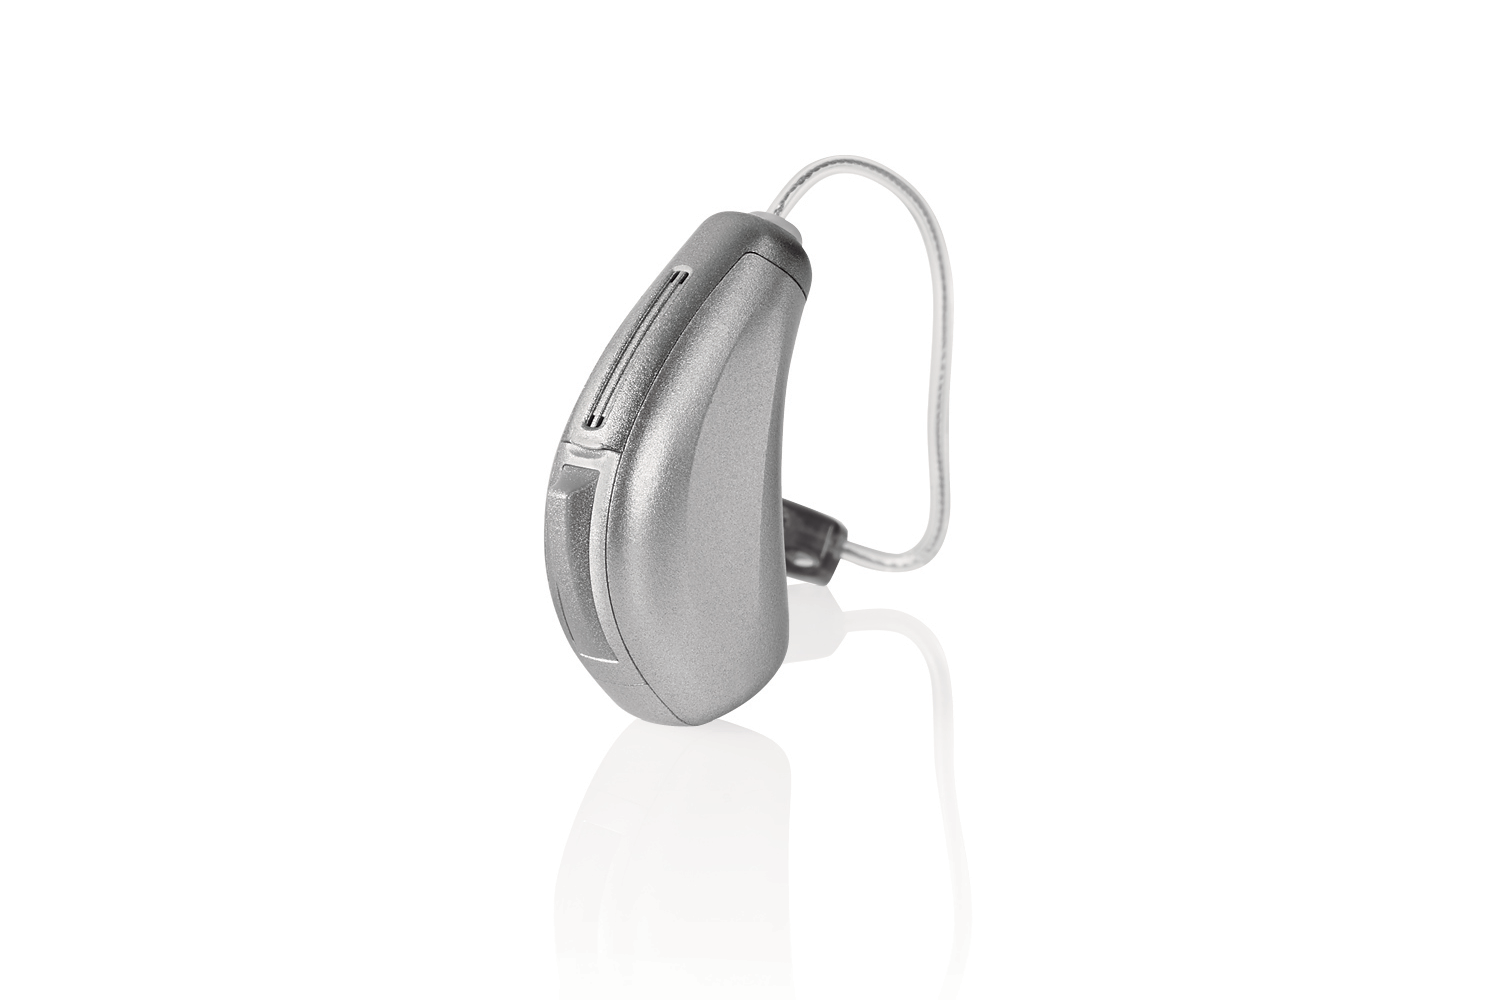 Hearing Aid Technology Asi Audiology Healthcare In Iowa Are Many Types Of Aids Which Vary Size Power And Circuitry Receiver Canal